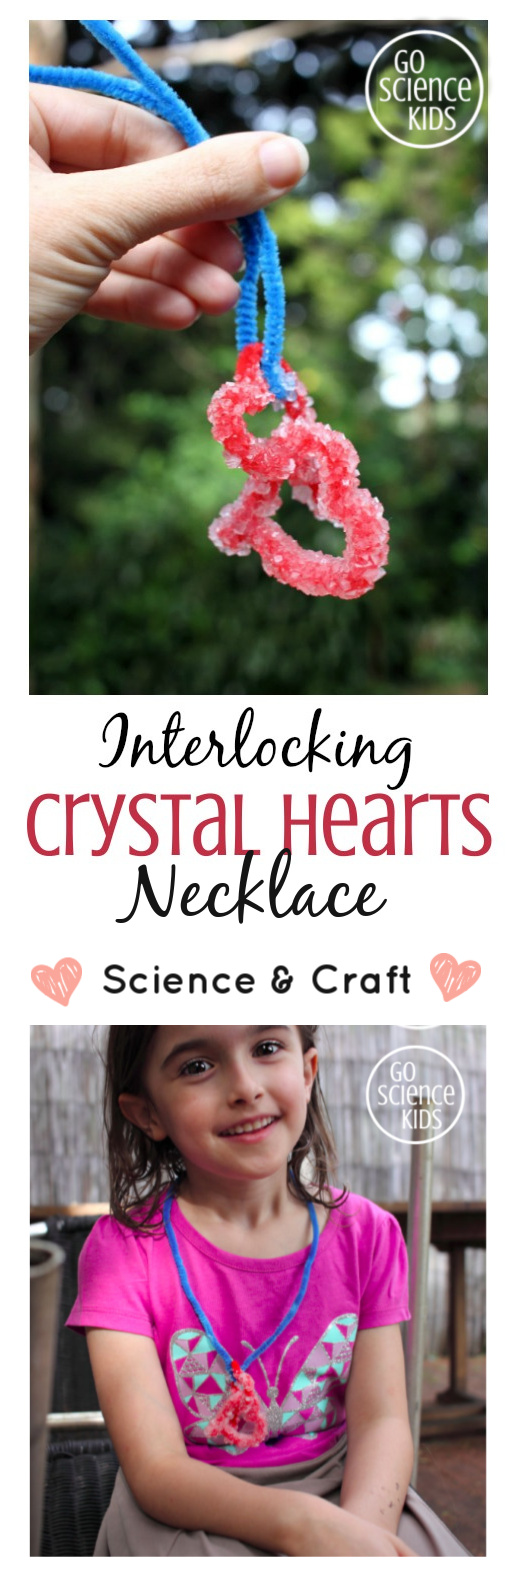 Interlocking crystal hearts - science and craft STEM or STEAM project for kids